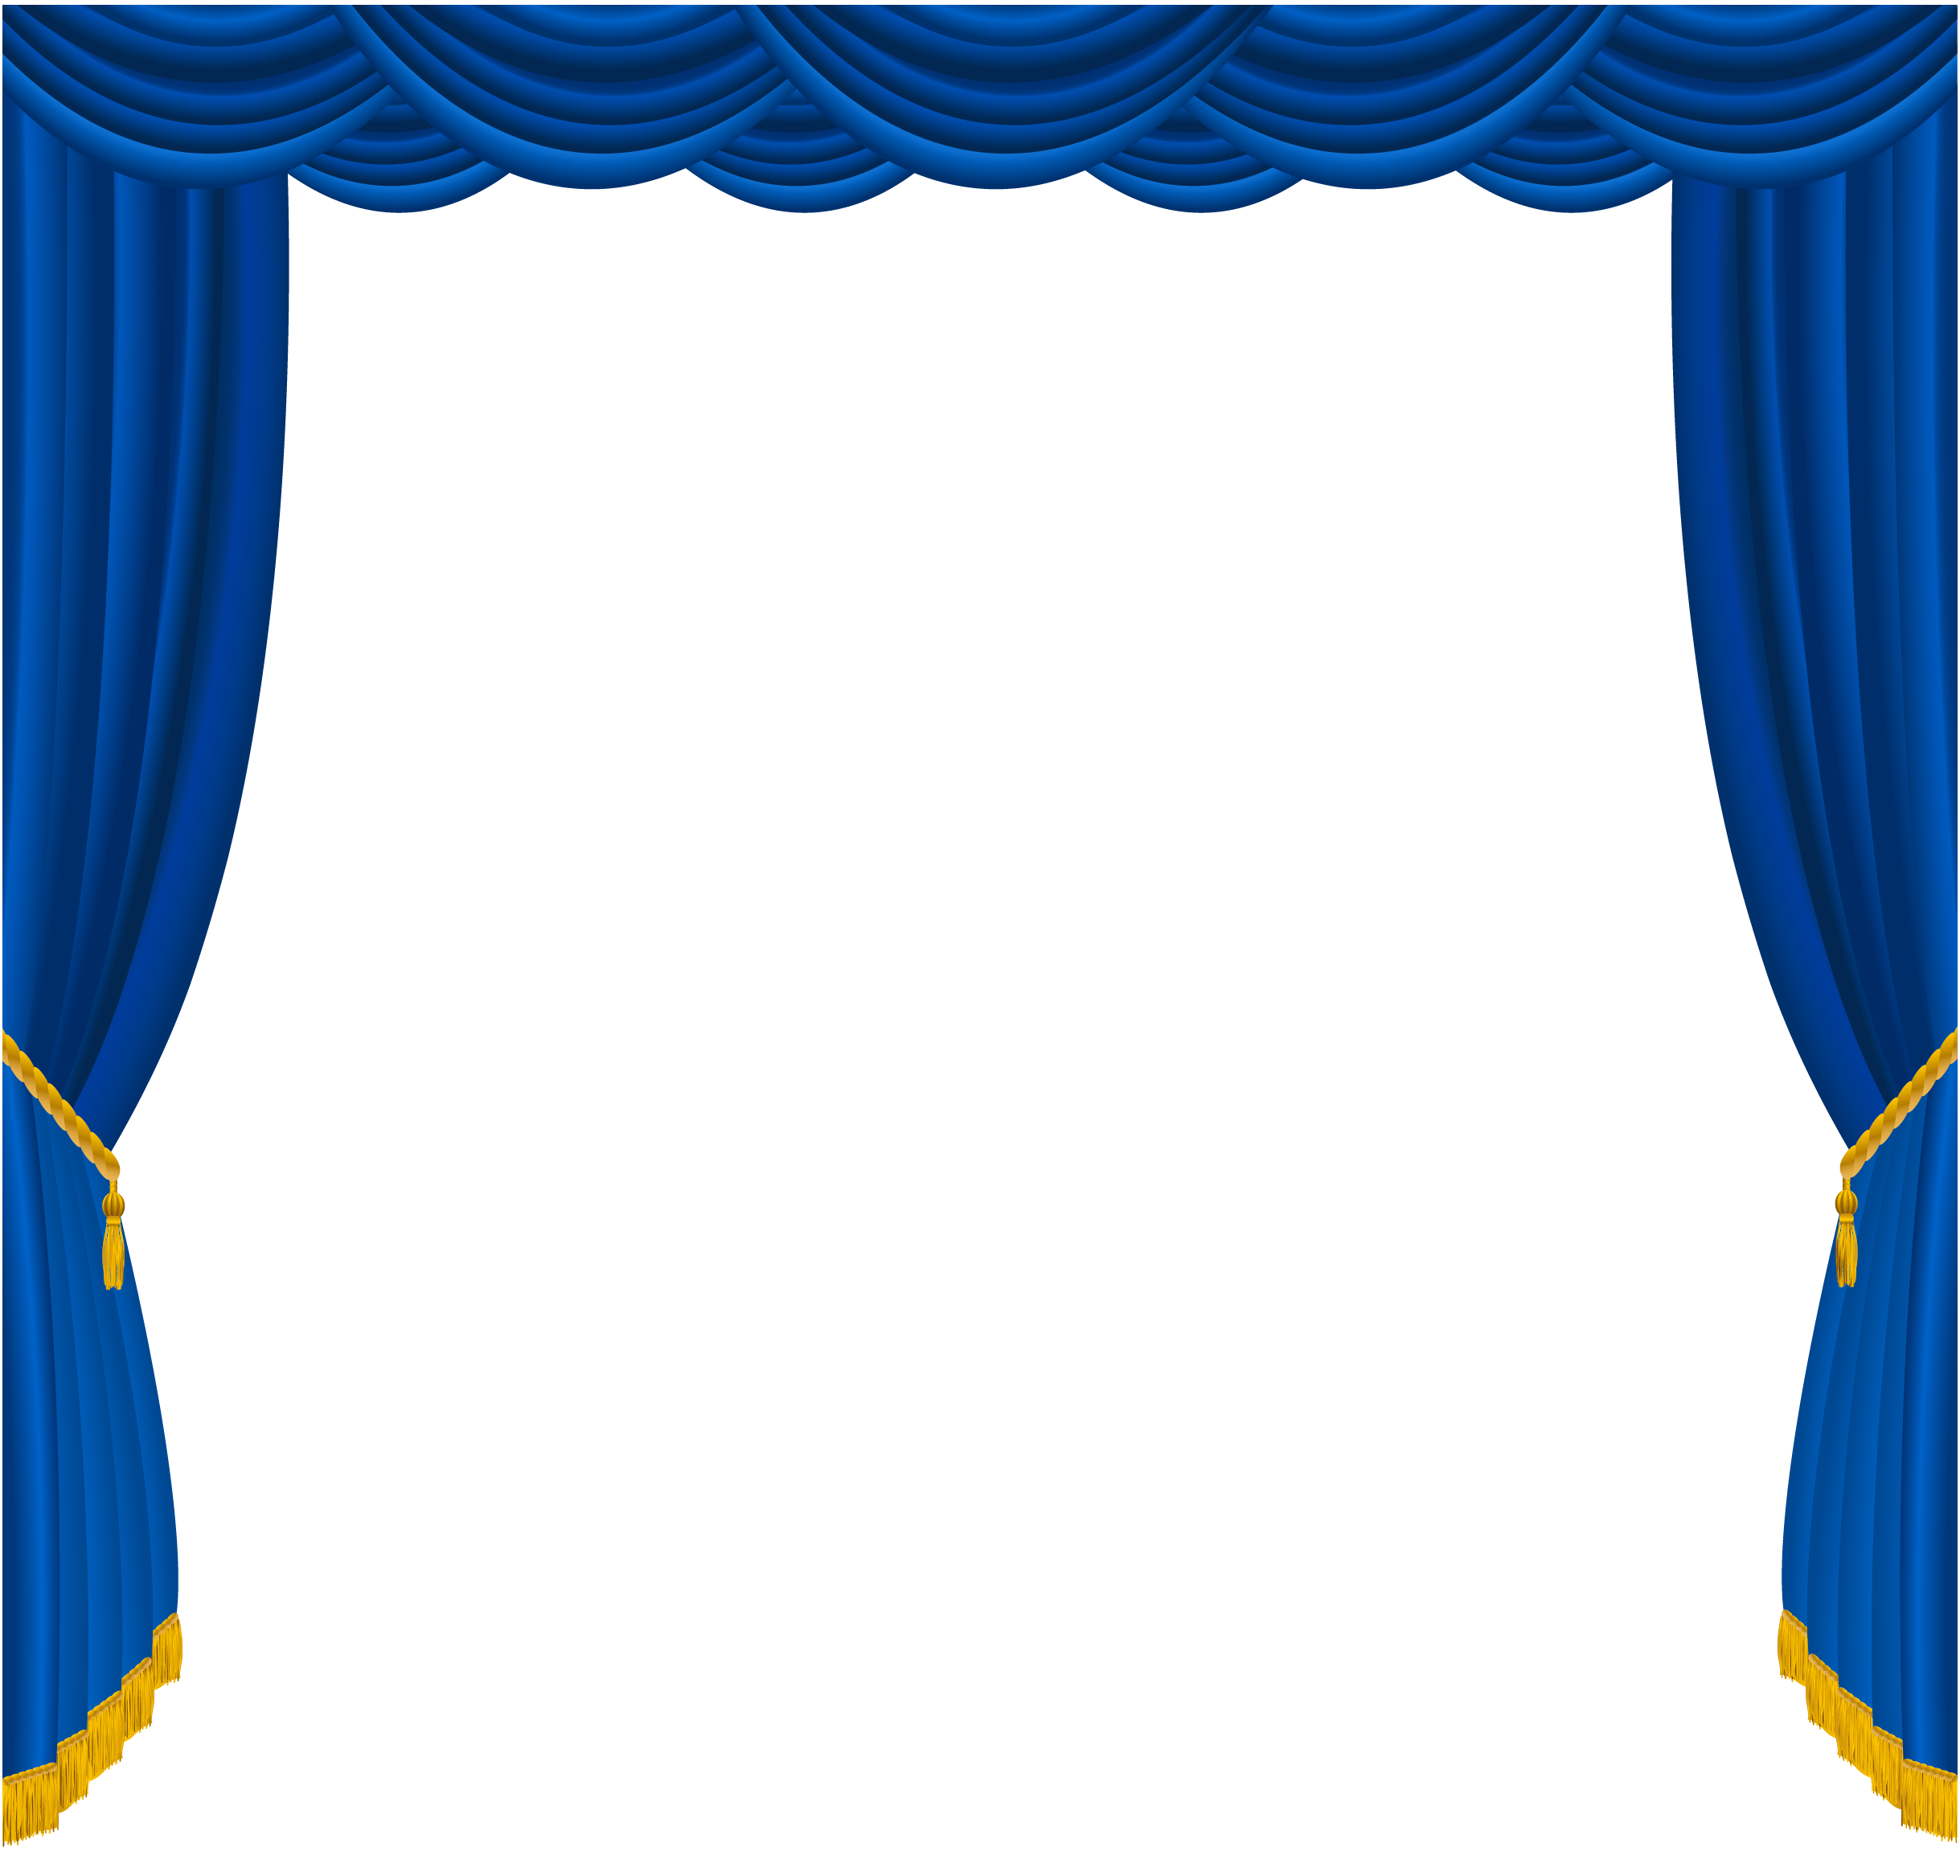 Silk curtain png. Transparent blue curtains decor